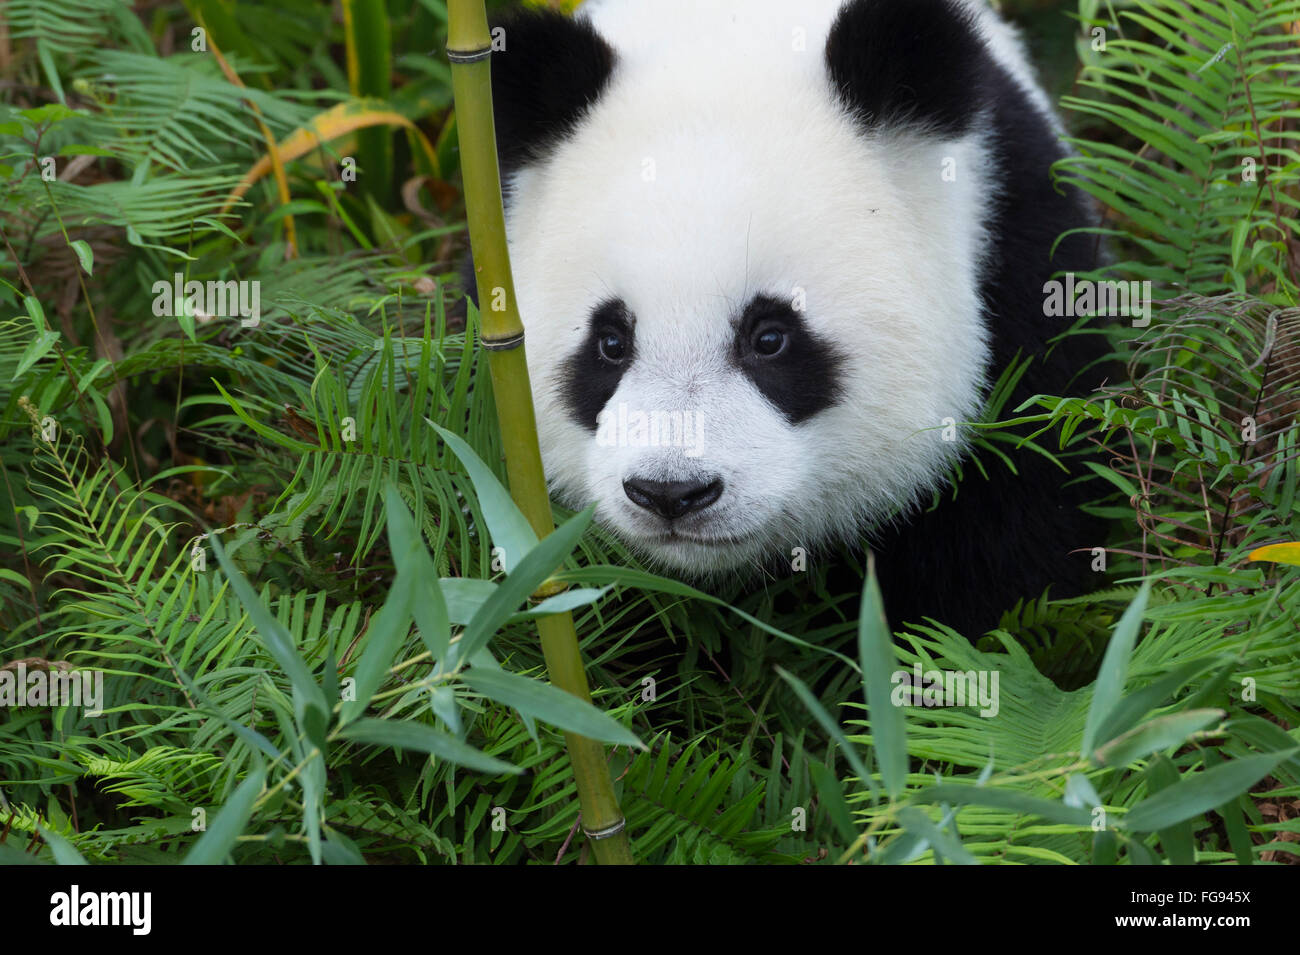 Two years aged young Giant Panda , China Conservation and Research Centre for the Giant Pandas, Chengdu, Sichuan, - Stock Image